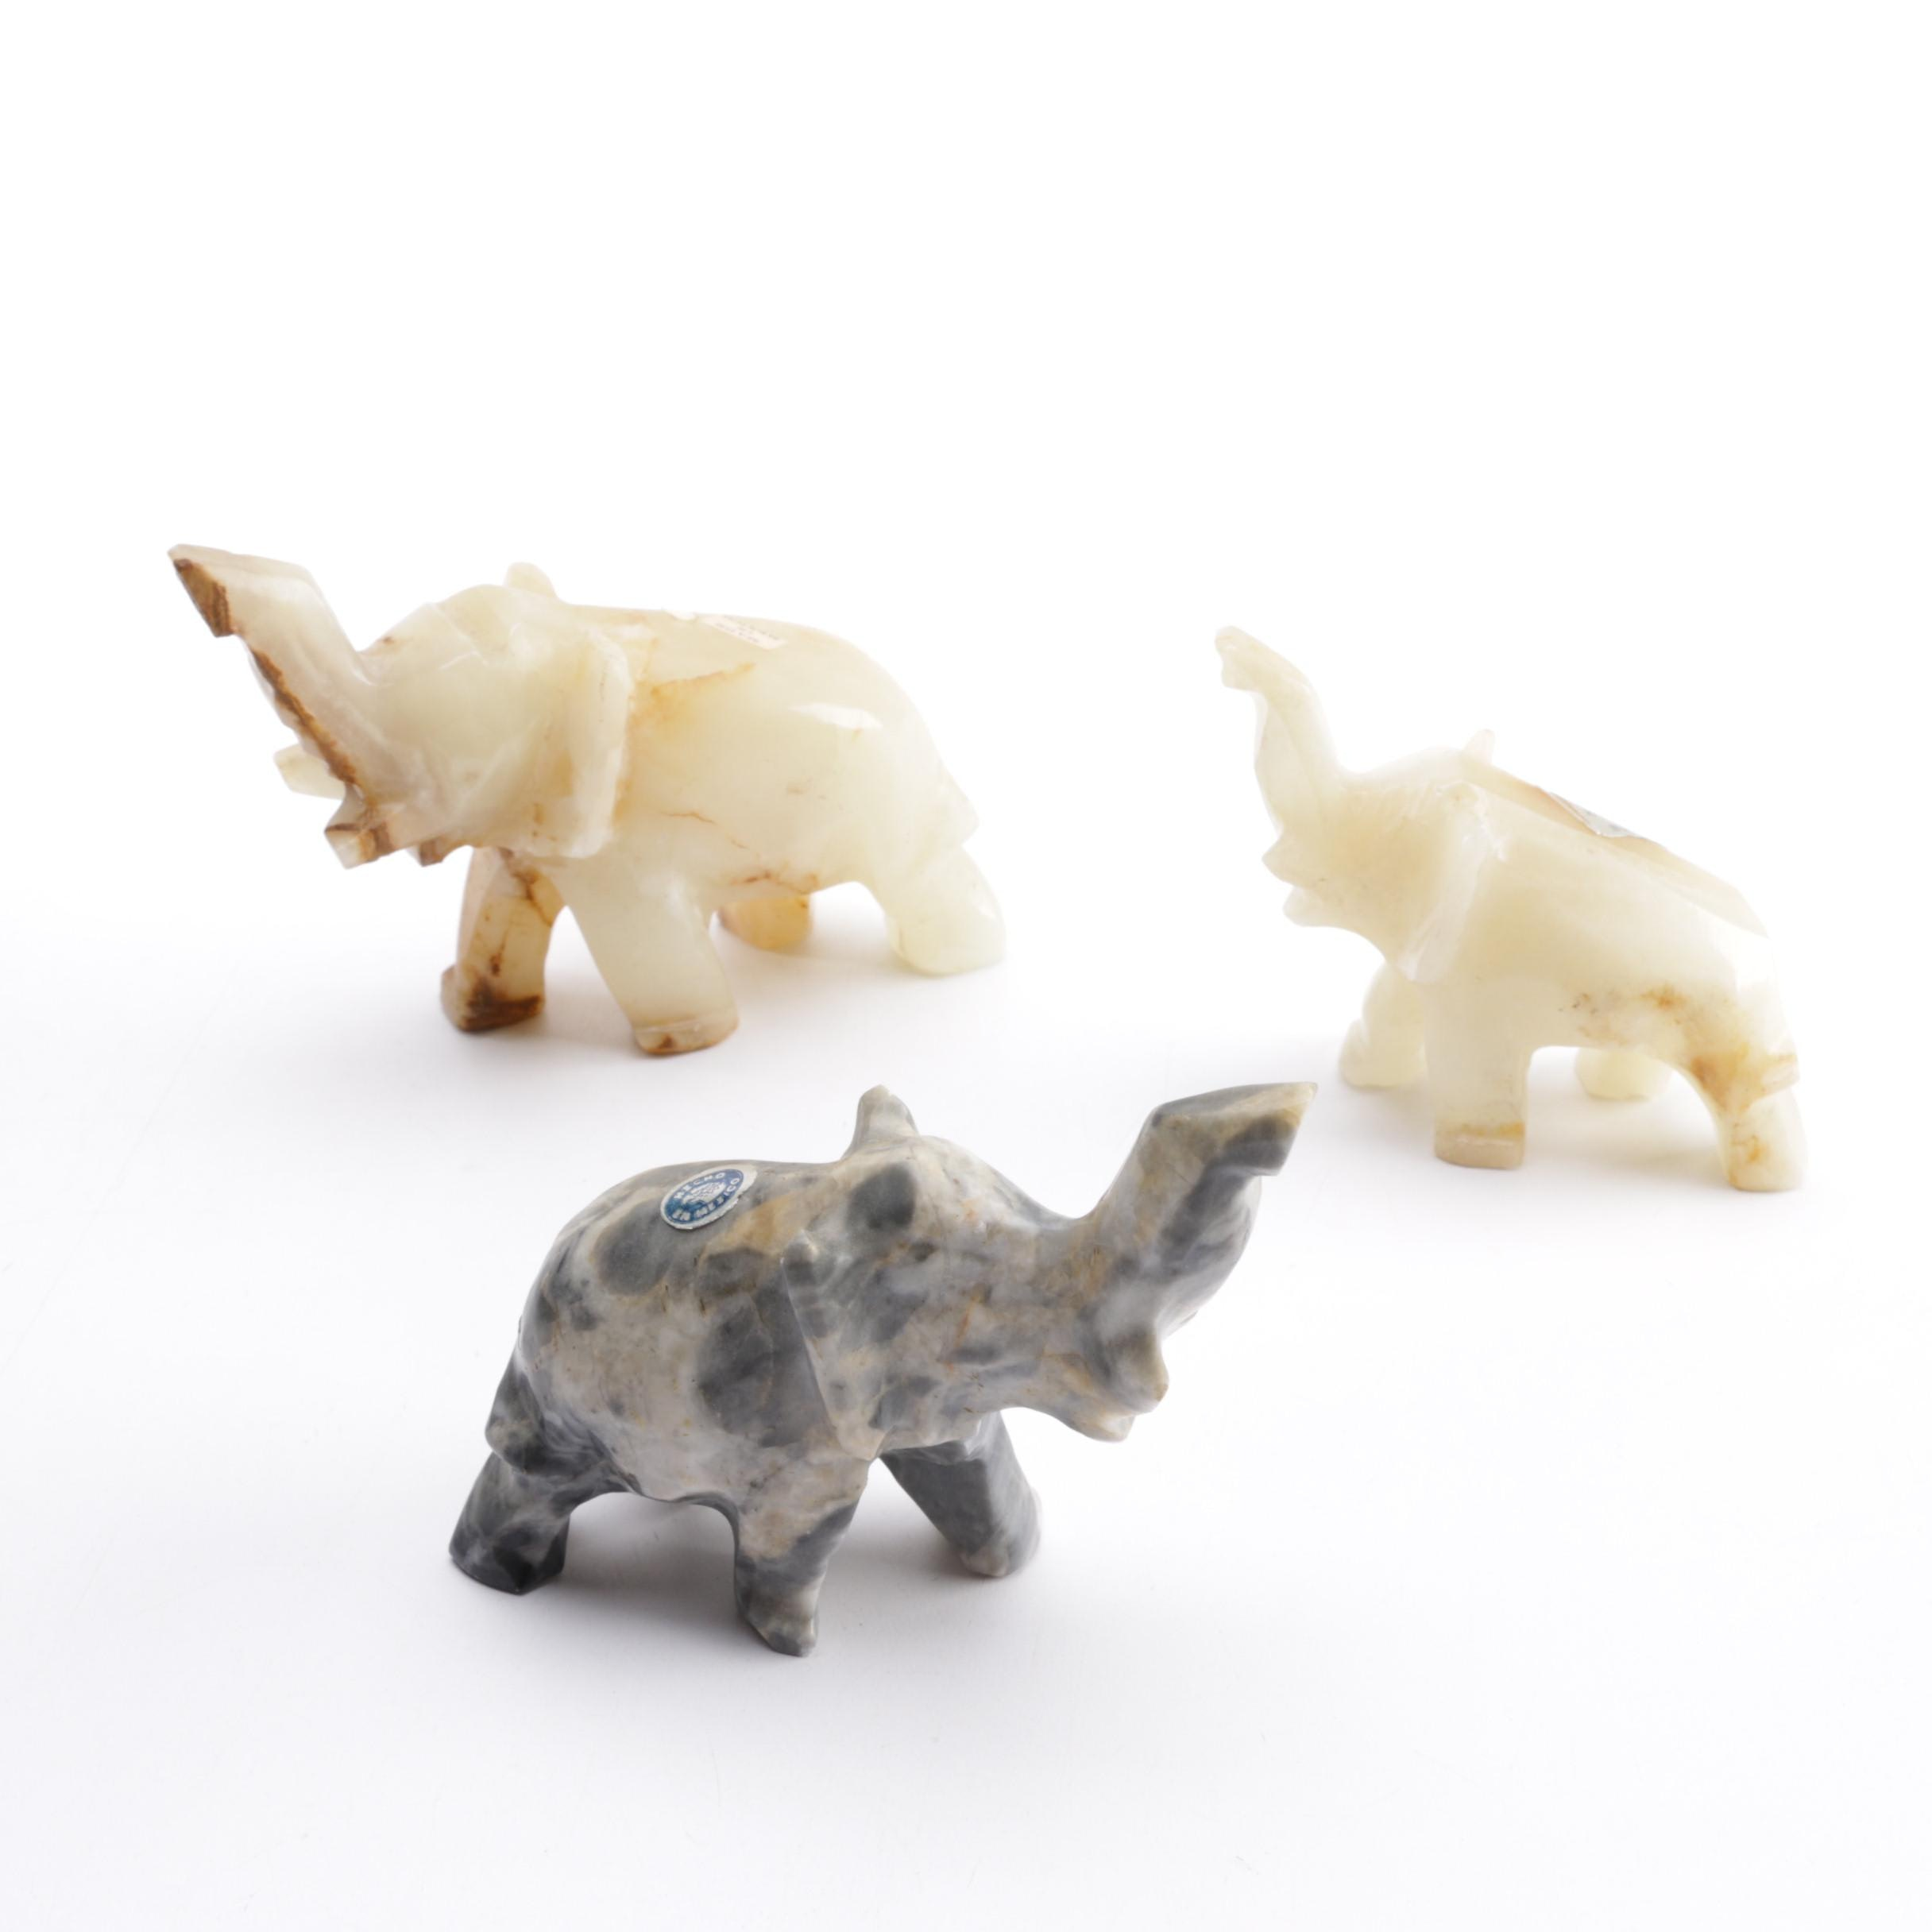 Marble and Calcite Elephant Figurines